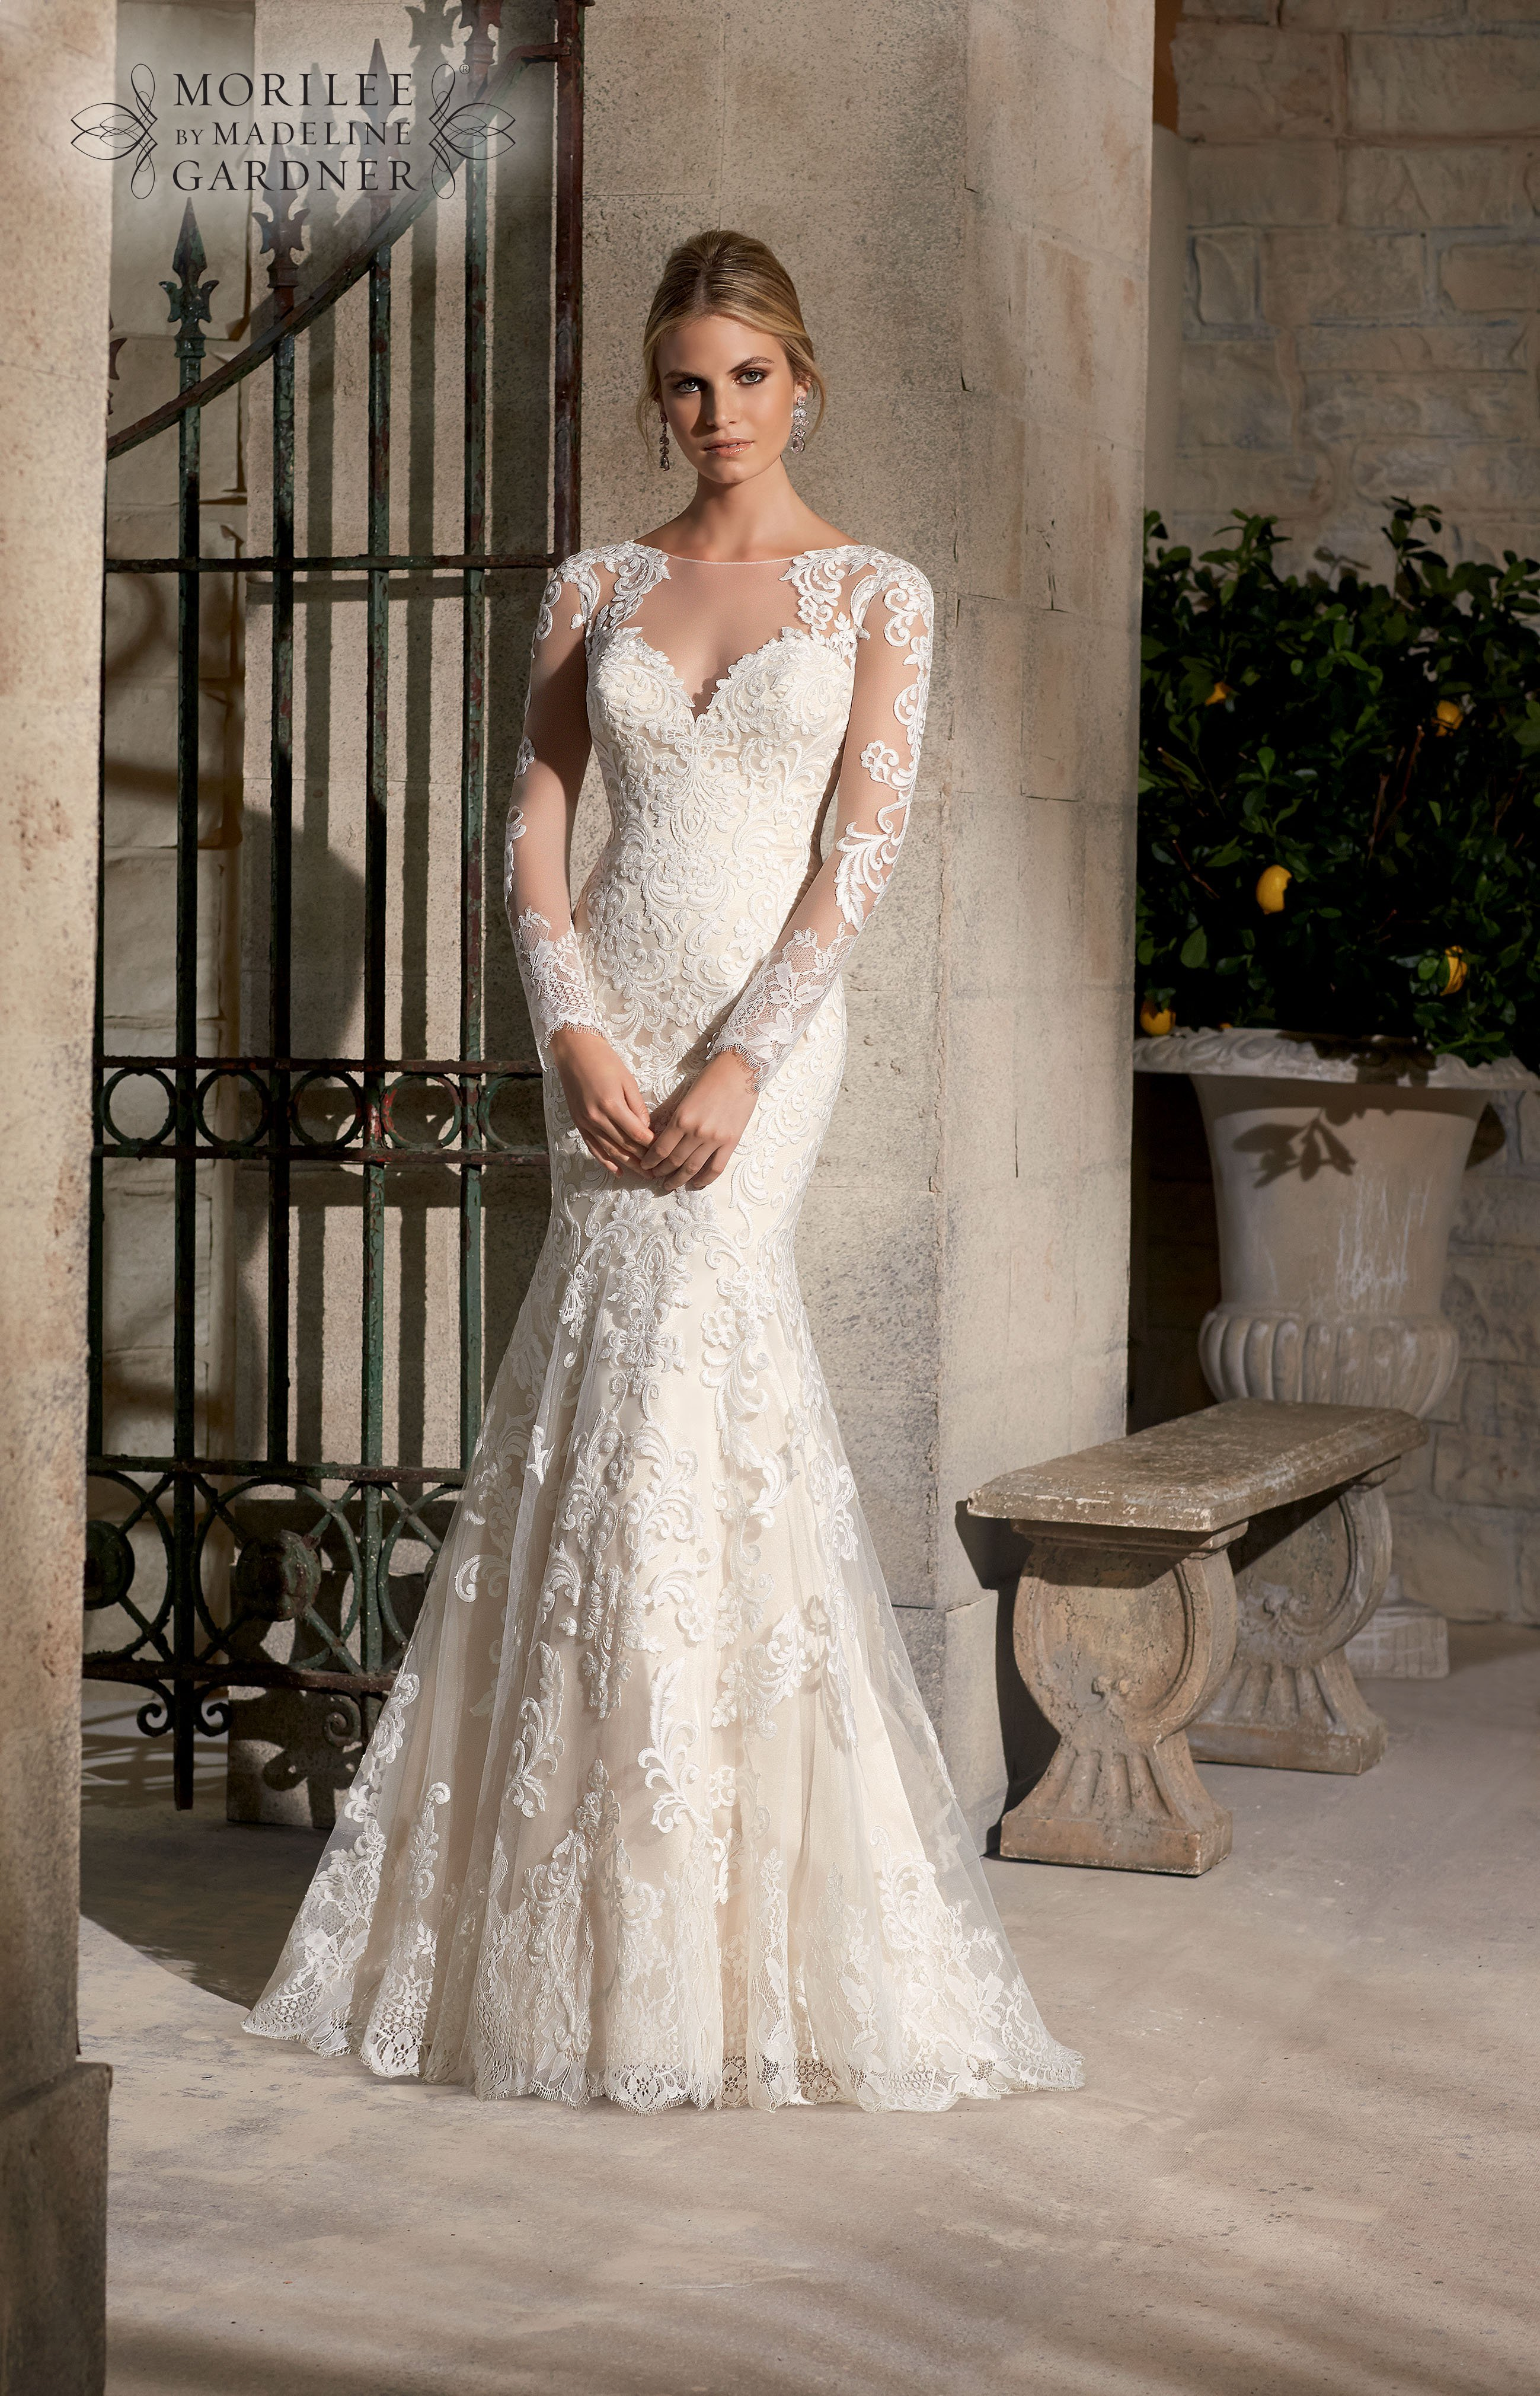 Mori lee 2725 wedding dress catrinas bridal mori lee 2725 wedding dress junglespirit Choice Image